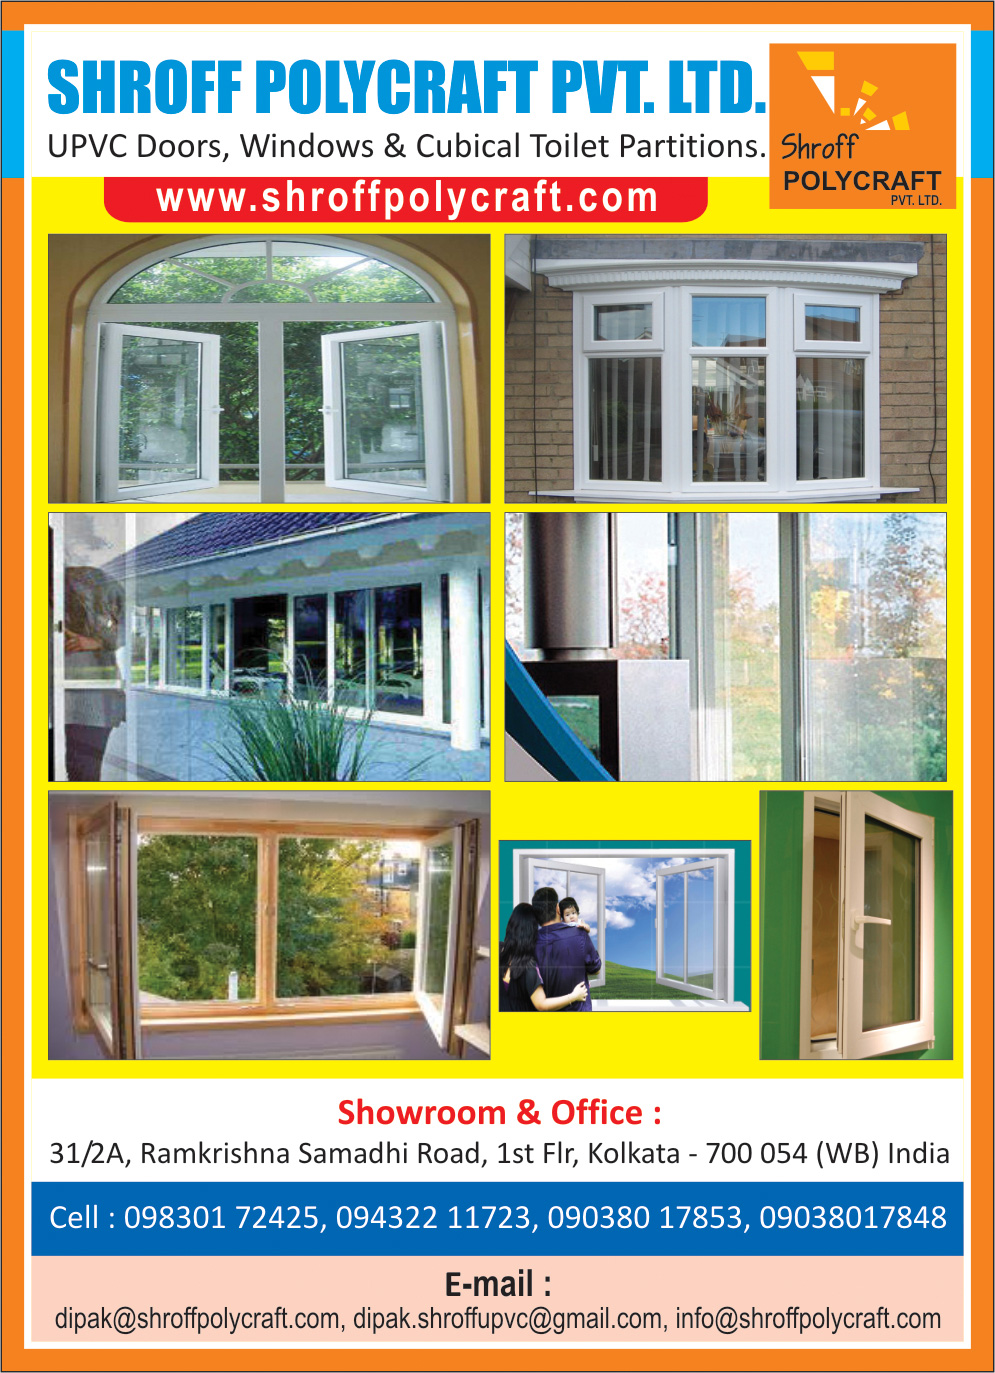 SHROFF POLYCRAFT PVT LTD Doors and Window Fittings Kolkata Yellow Pages Kolkata West Bengal